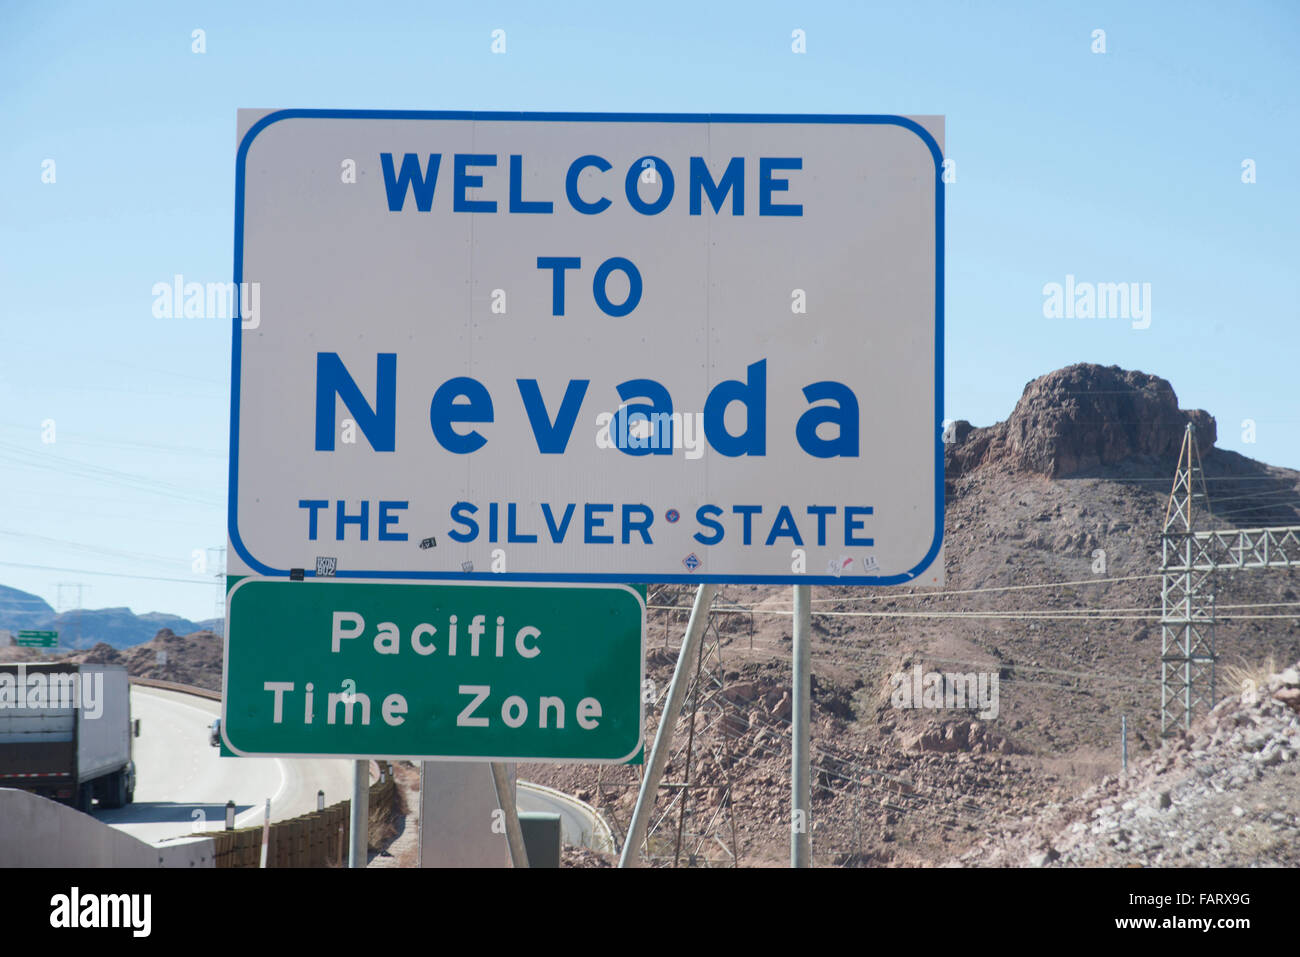 Welcome To Nevada Road Sign Stock Image - Image of rock